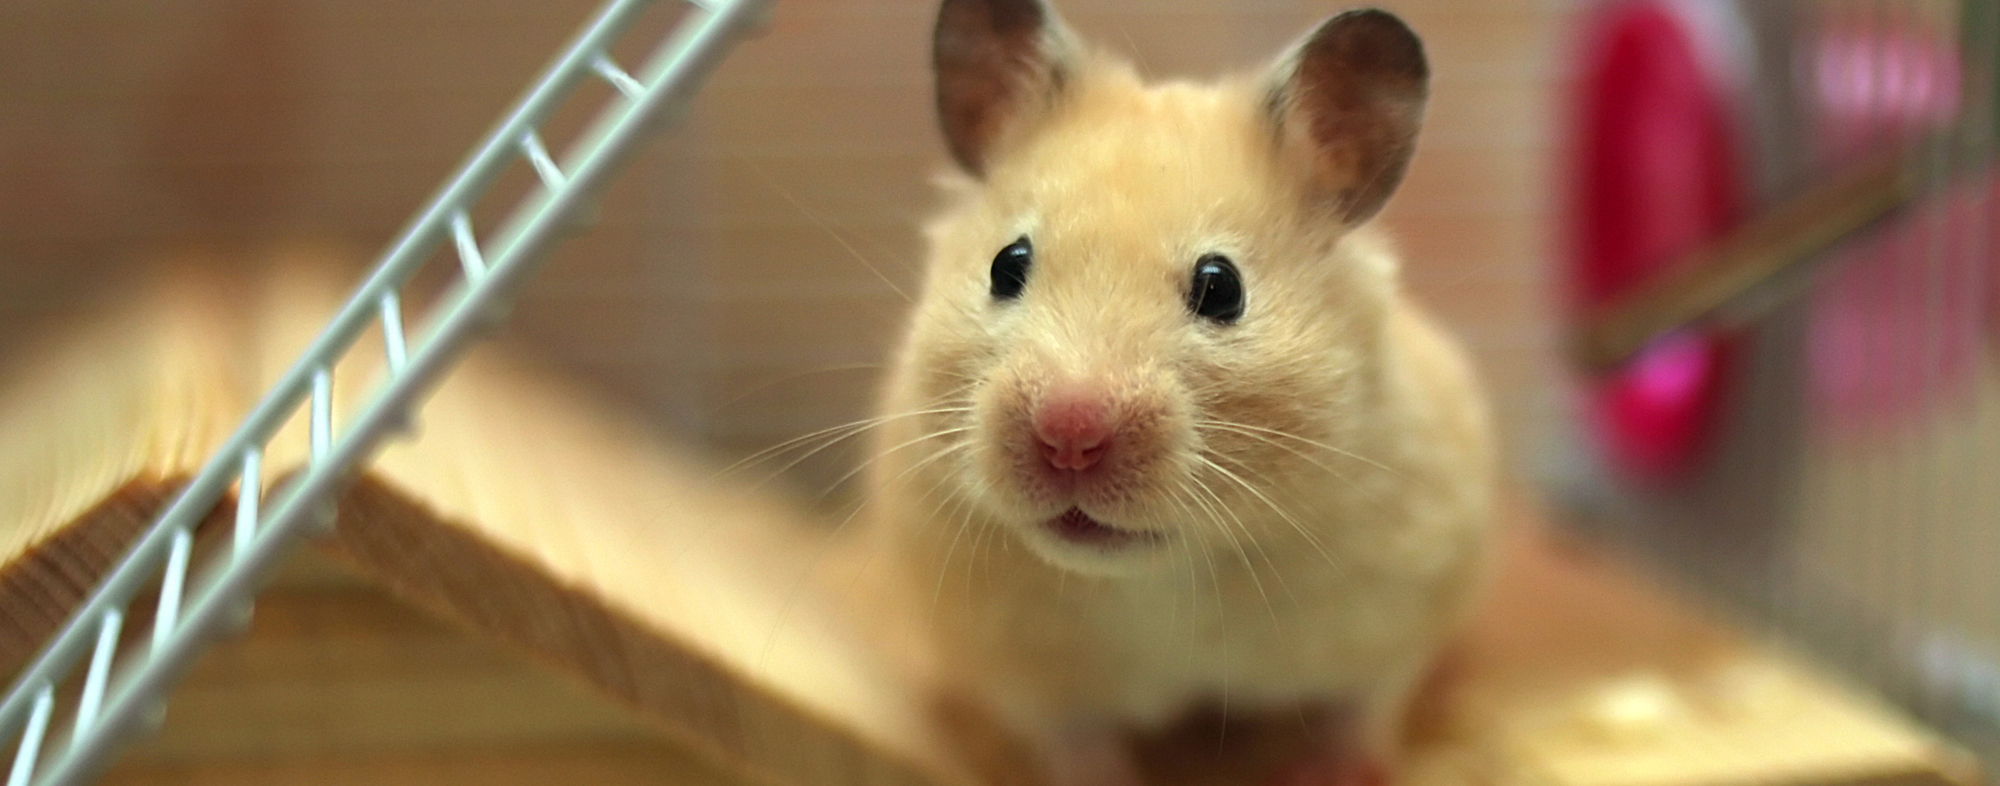 Cute pet mouse peering inquisitively from inside his cage